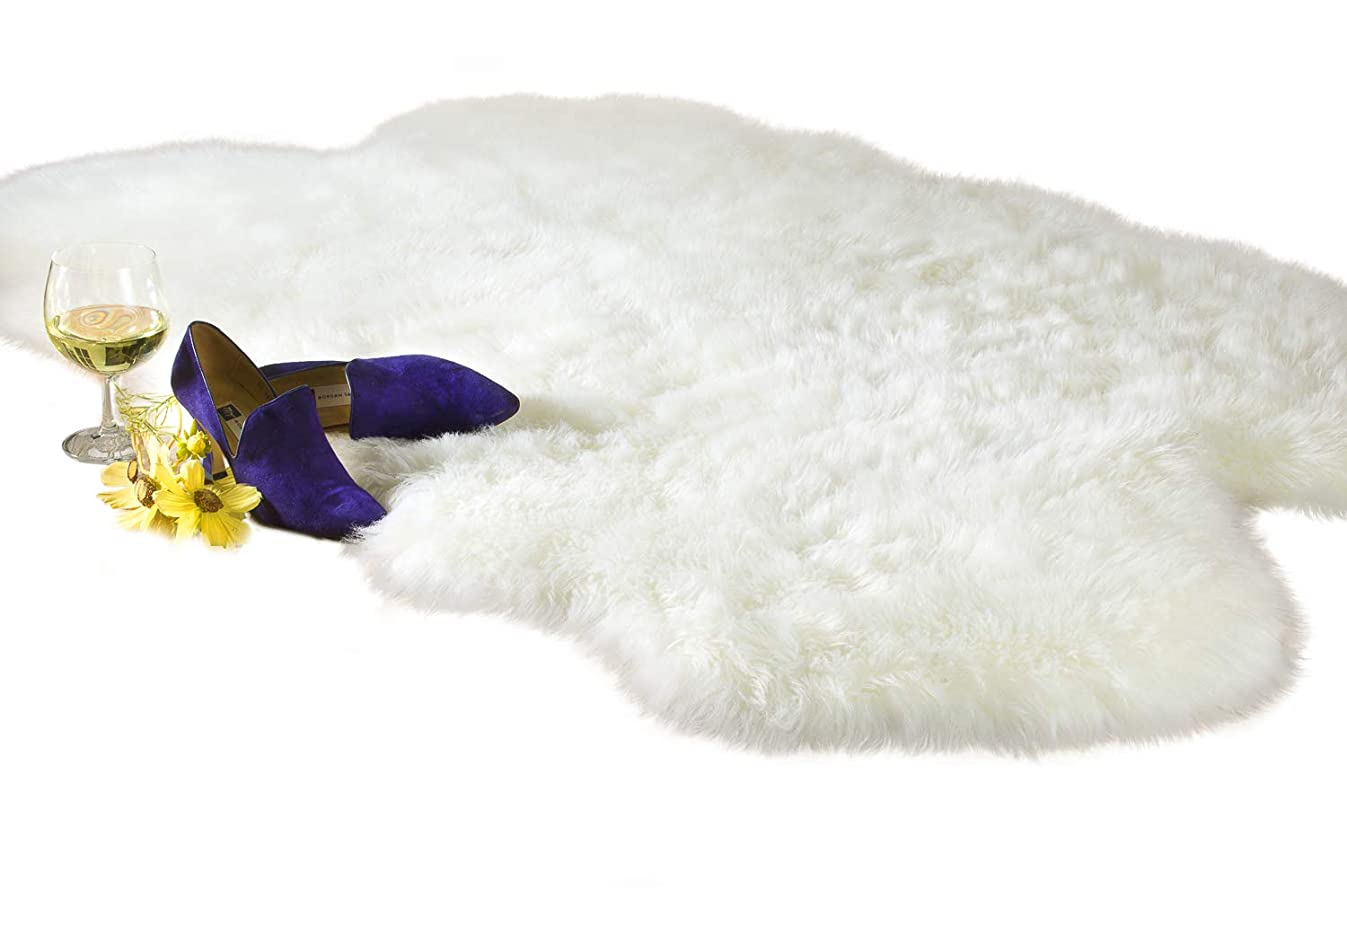 Luxury Faux Fur Sheepskin Rug, Ivory, 4ft x 6ft with Thick Pile and Non Skid Back | Machine Washable, Makes a Soft, Stylish Home Décor Accent for a Kid's Room, Bedroom, Nursery, Living Room or Bath